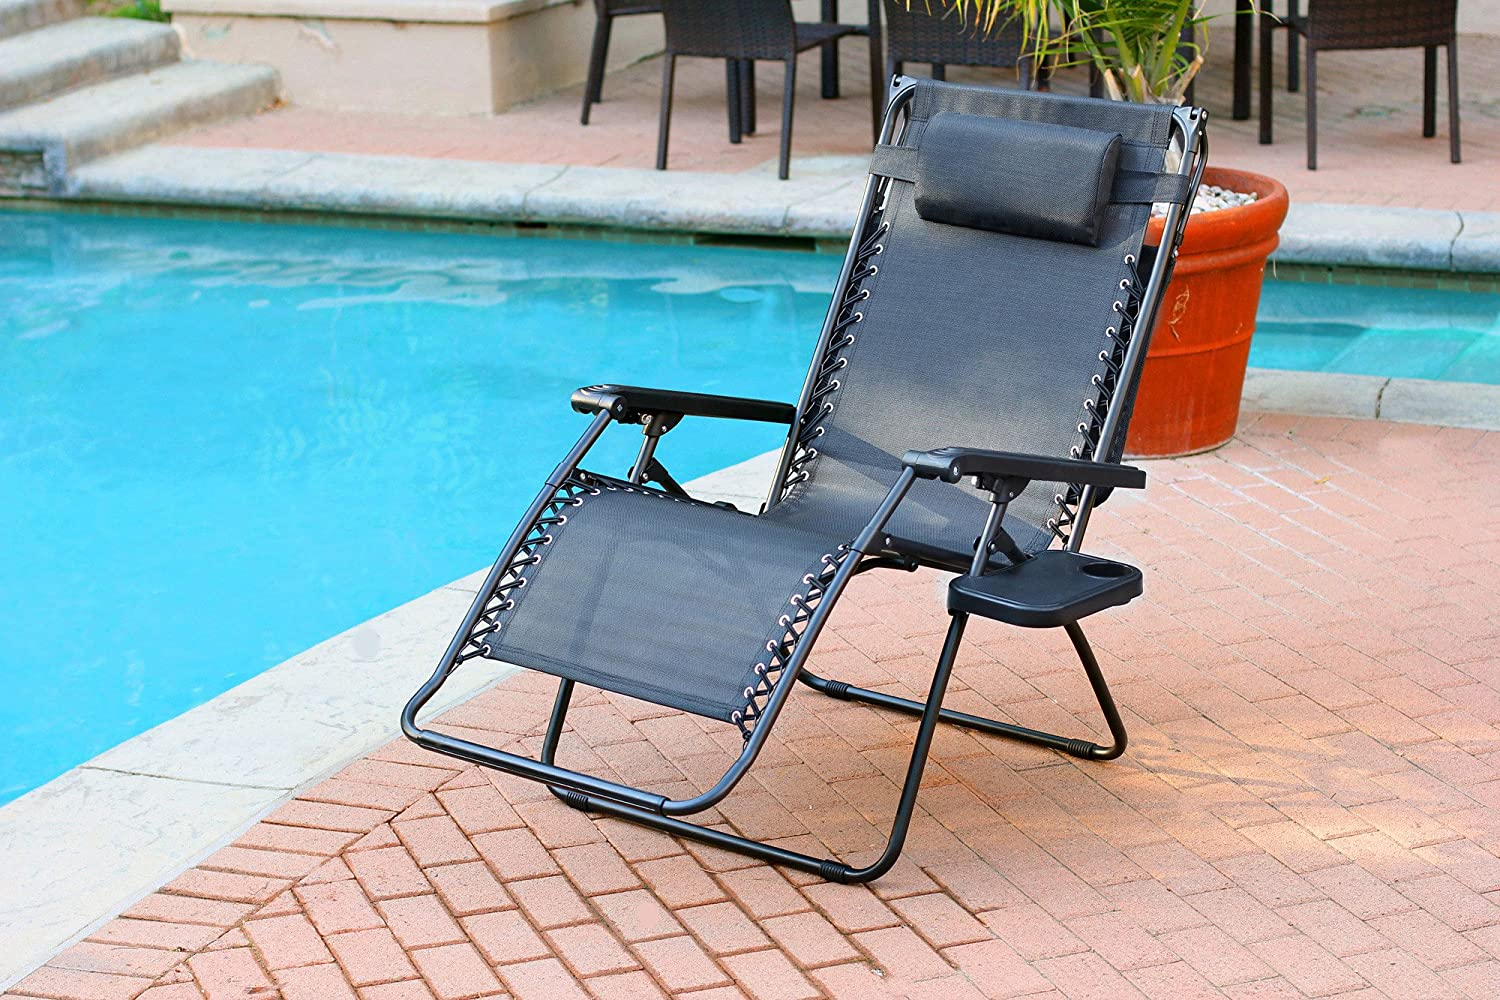 Oversized Zero Gravity Chair with Sunshade and Drink Tray – Black